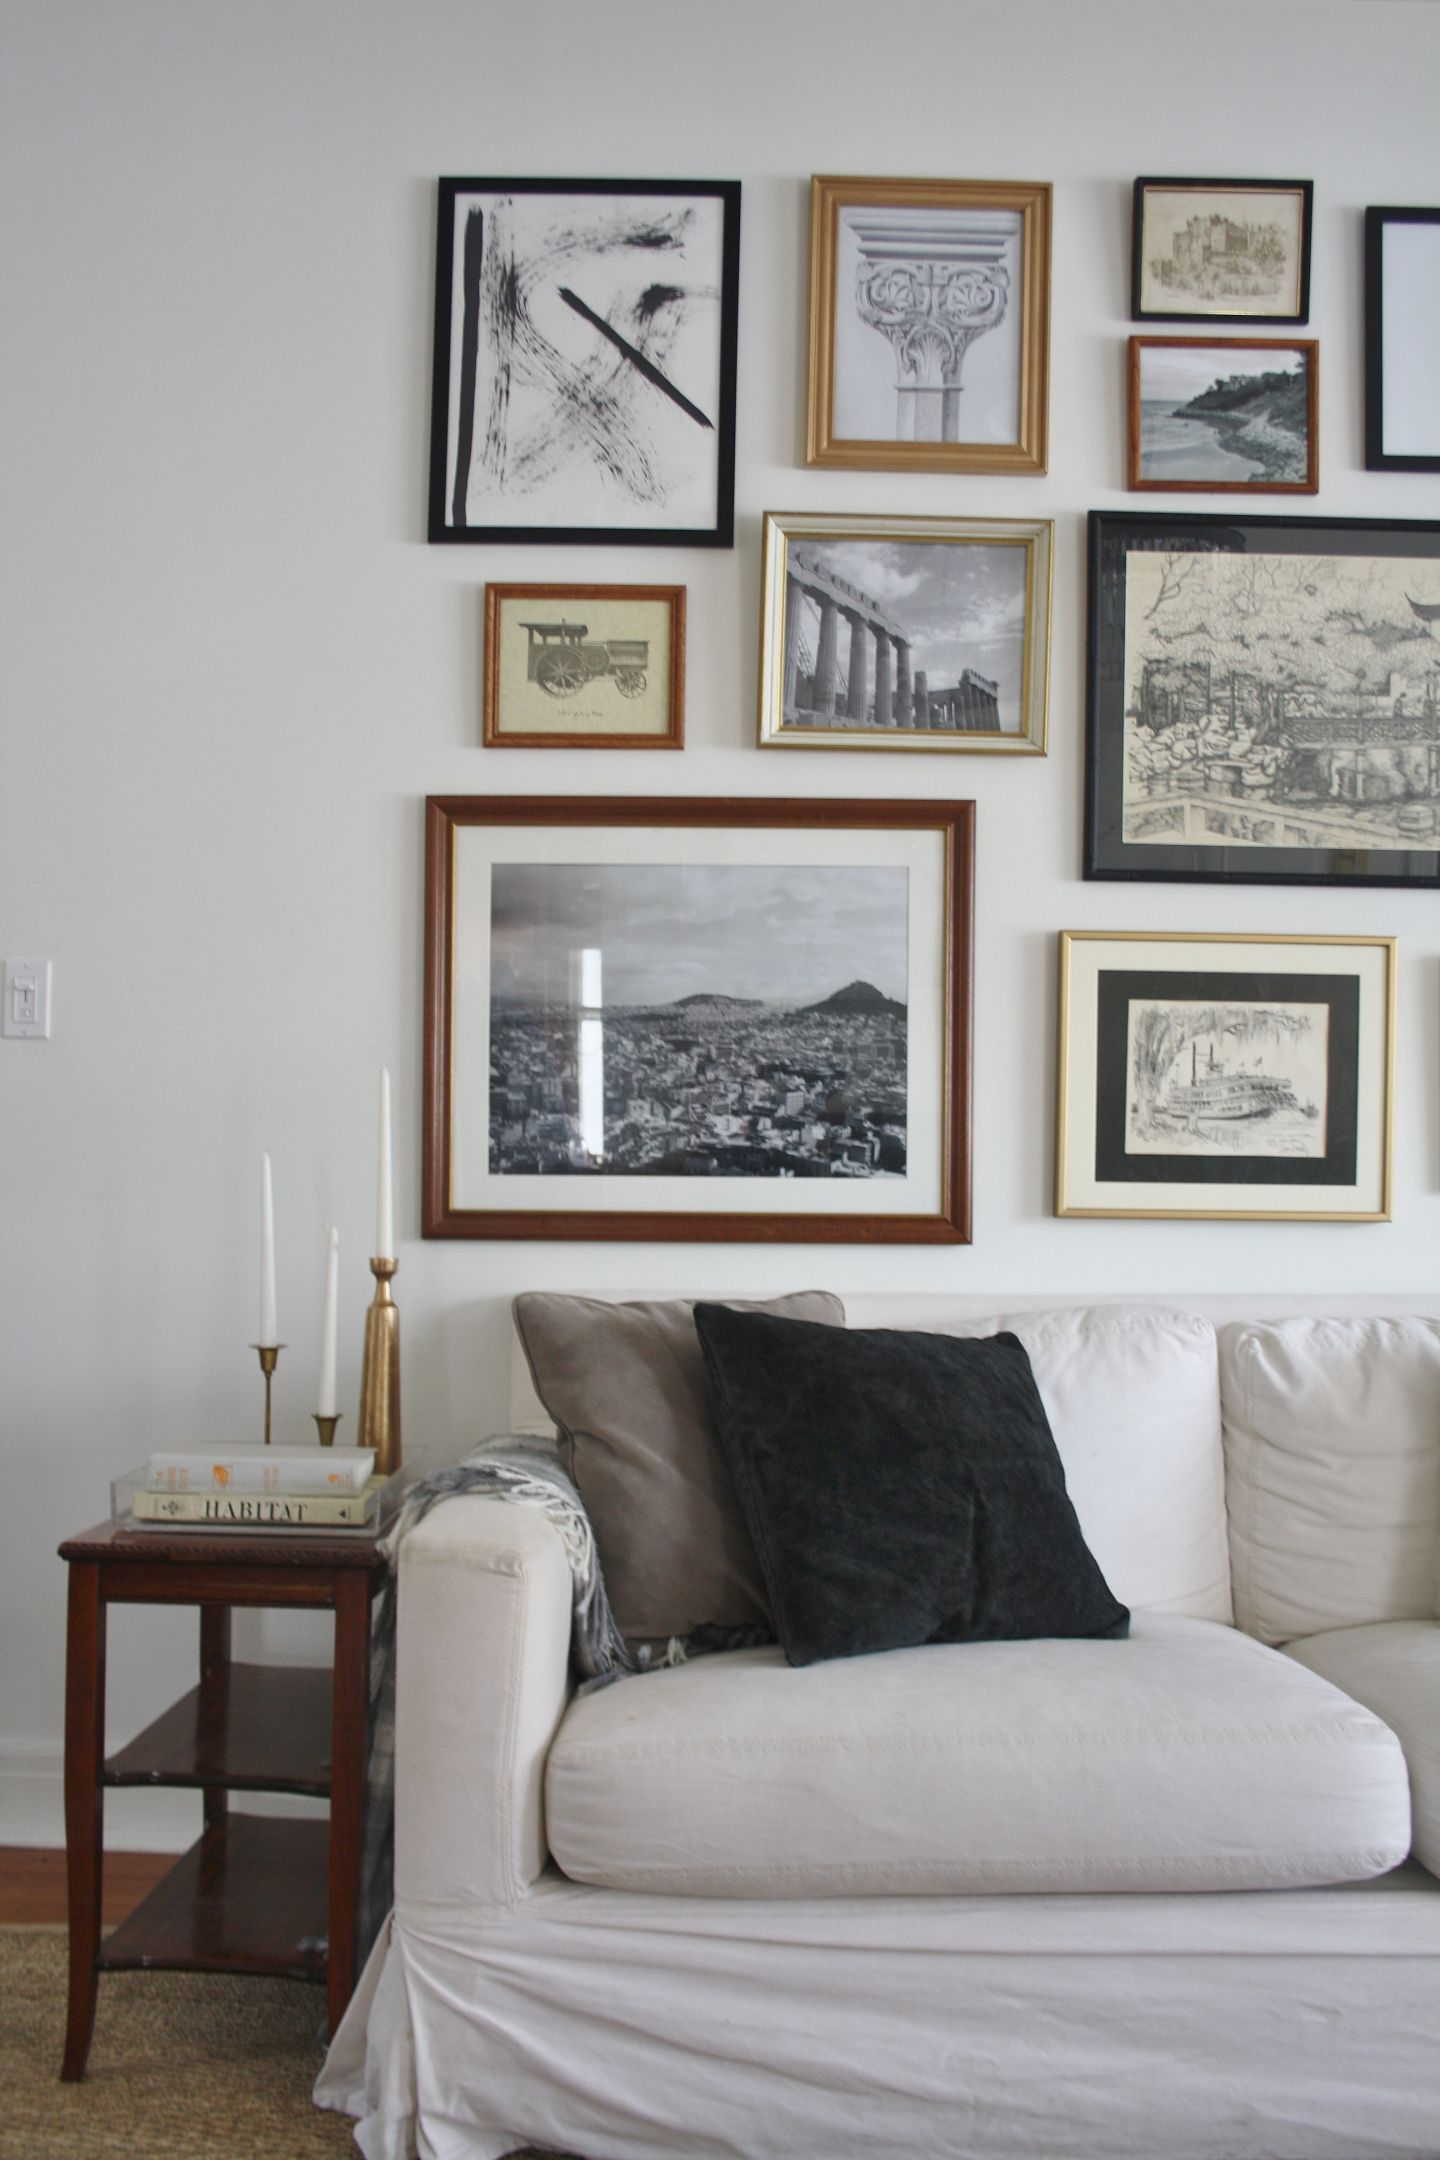 Our Living Room Gallery Wall Gallery Wall Living Room Living Room Photos Above Couch